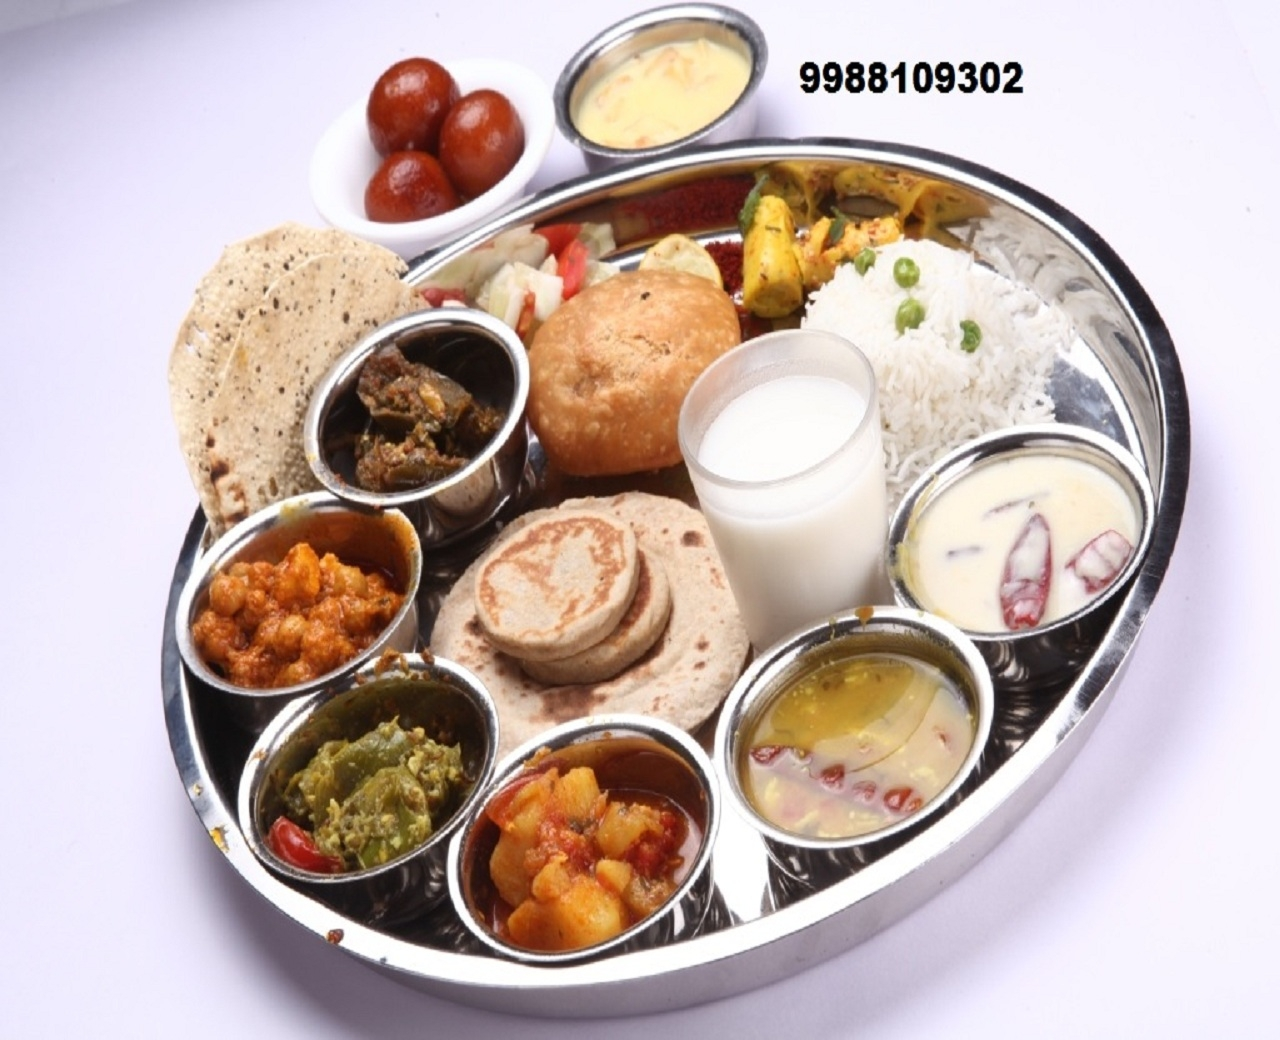 All Rise Pure Vegetarian Catering Service in Chand (@allrisepure) Cover Image